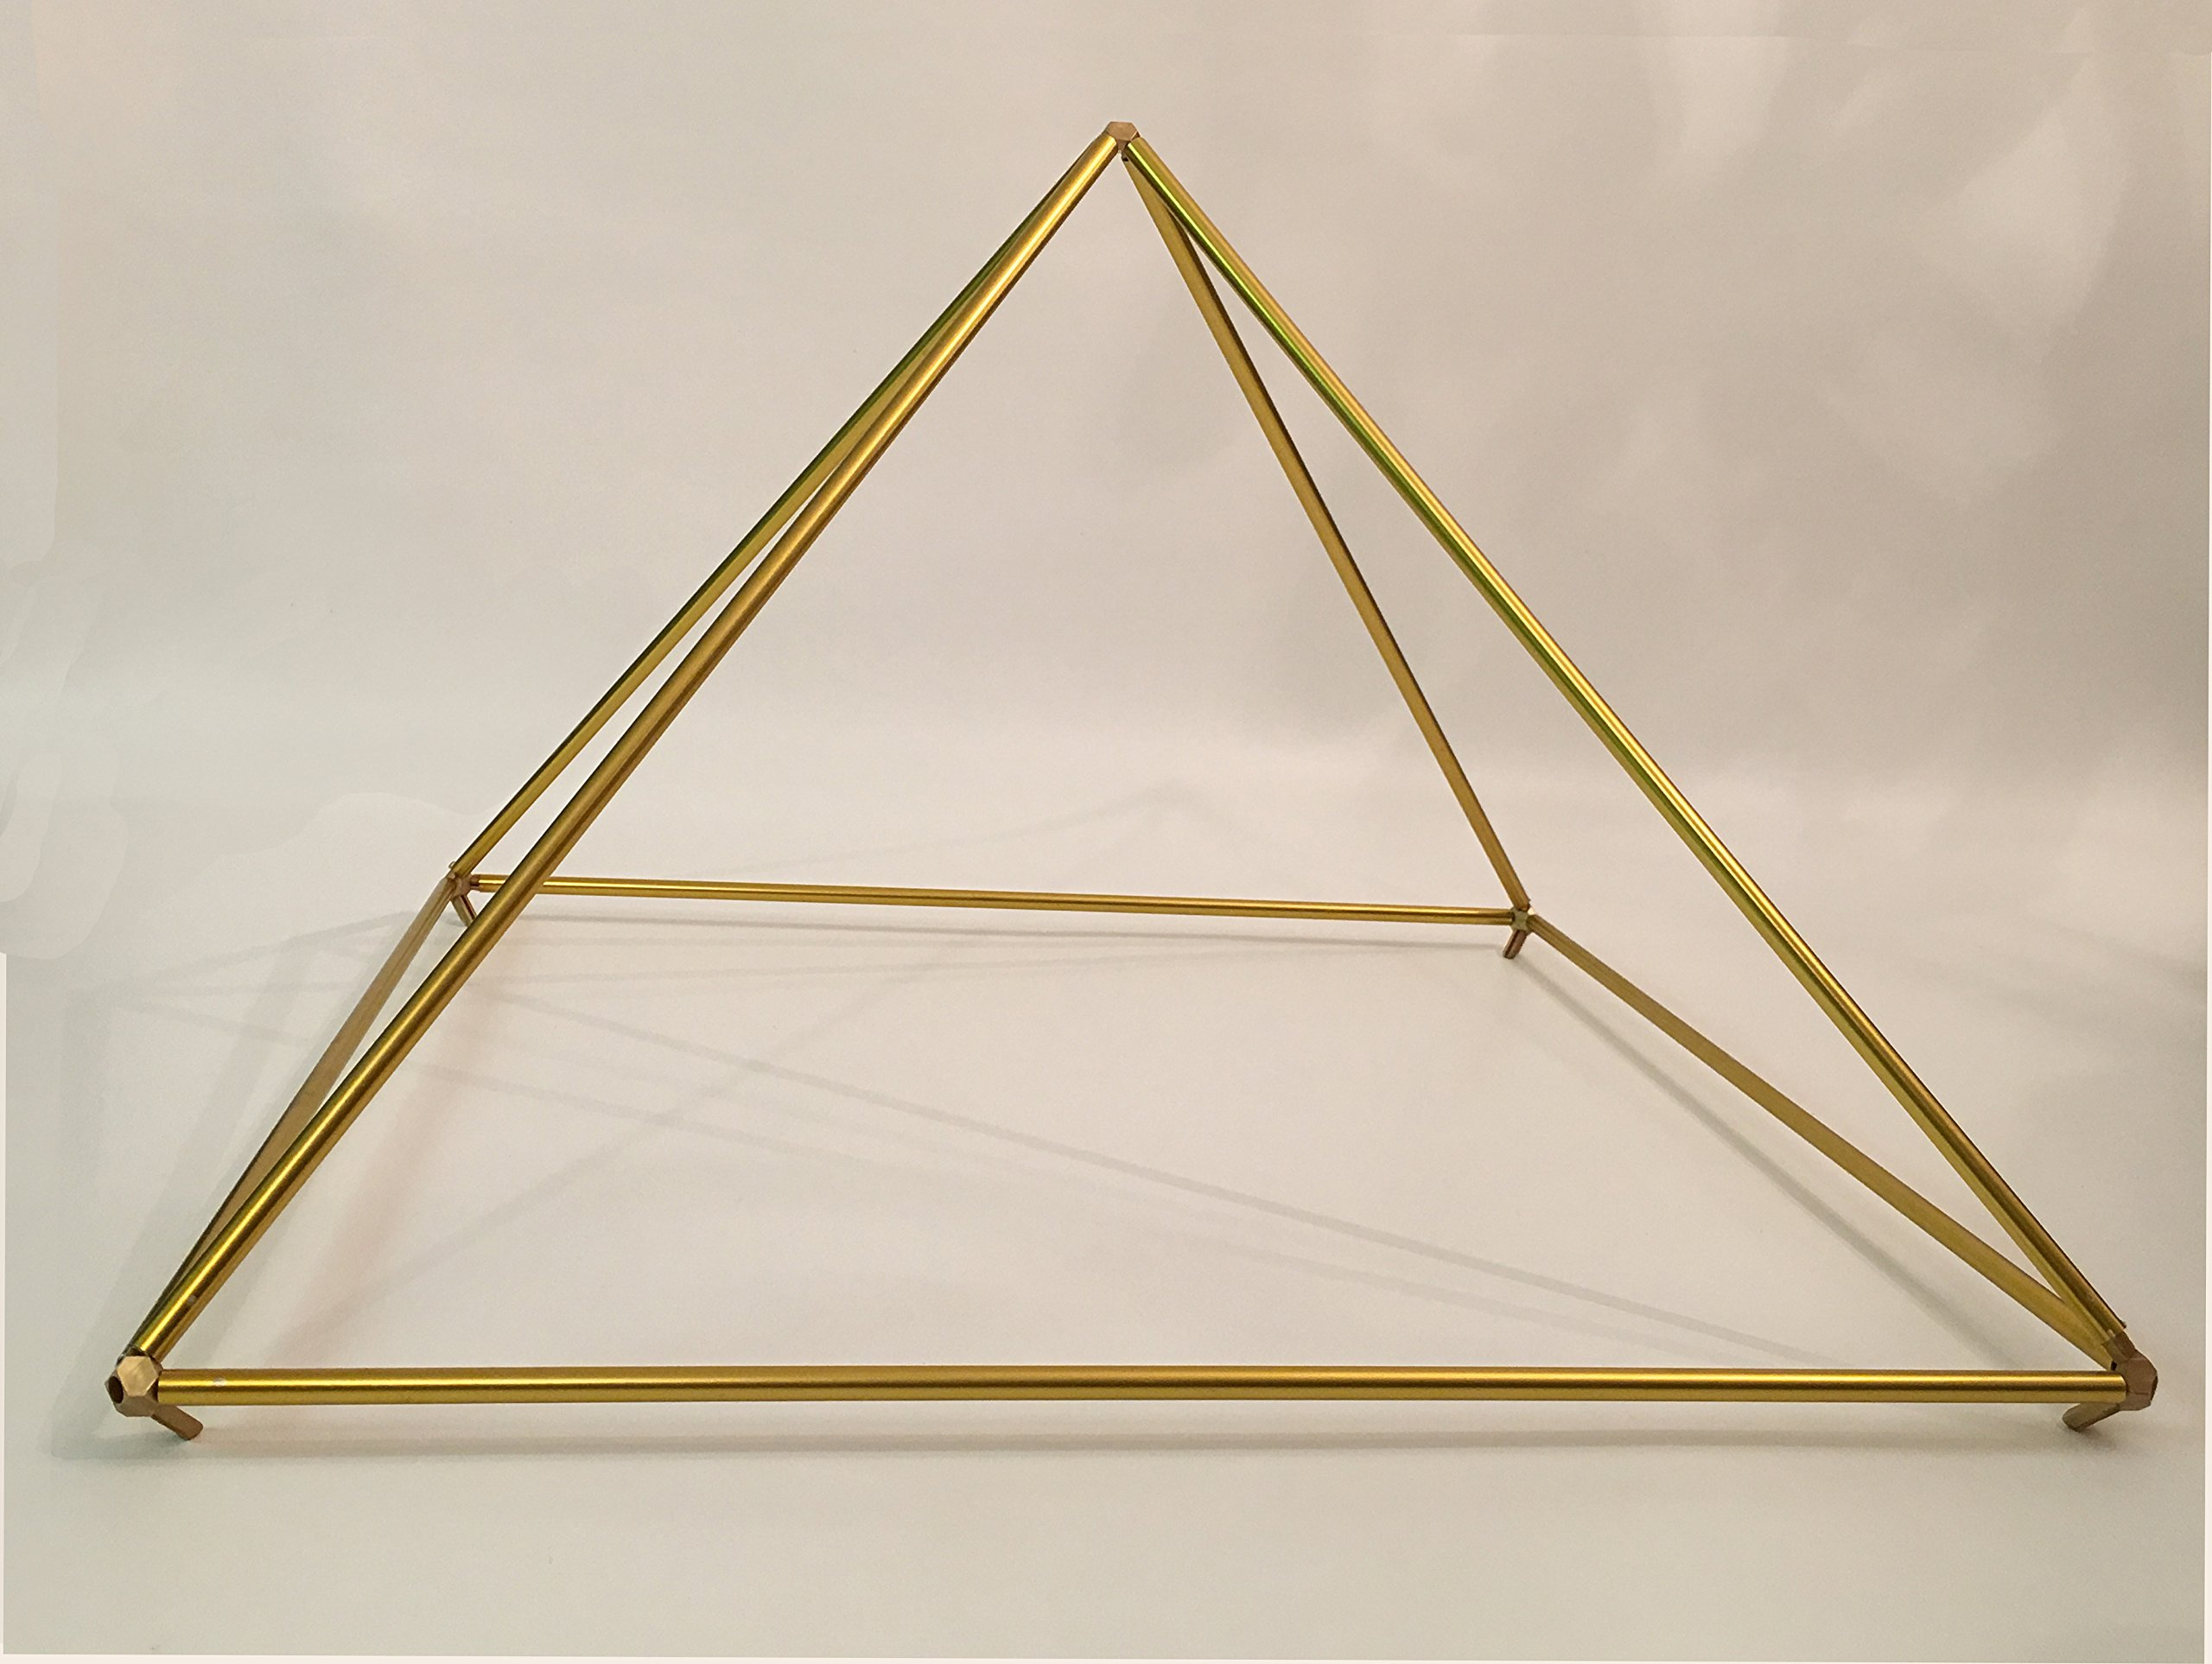 25'' Gold-Anodized Titanium Pyramid Frame Kit from Nick Edwards' Pyramid Planet by Nick Edwards Pyramid Planet (Image #1)